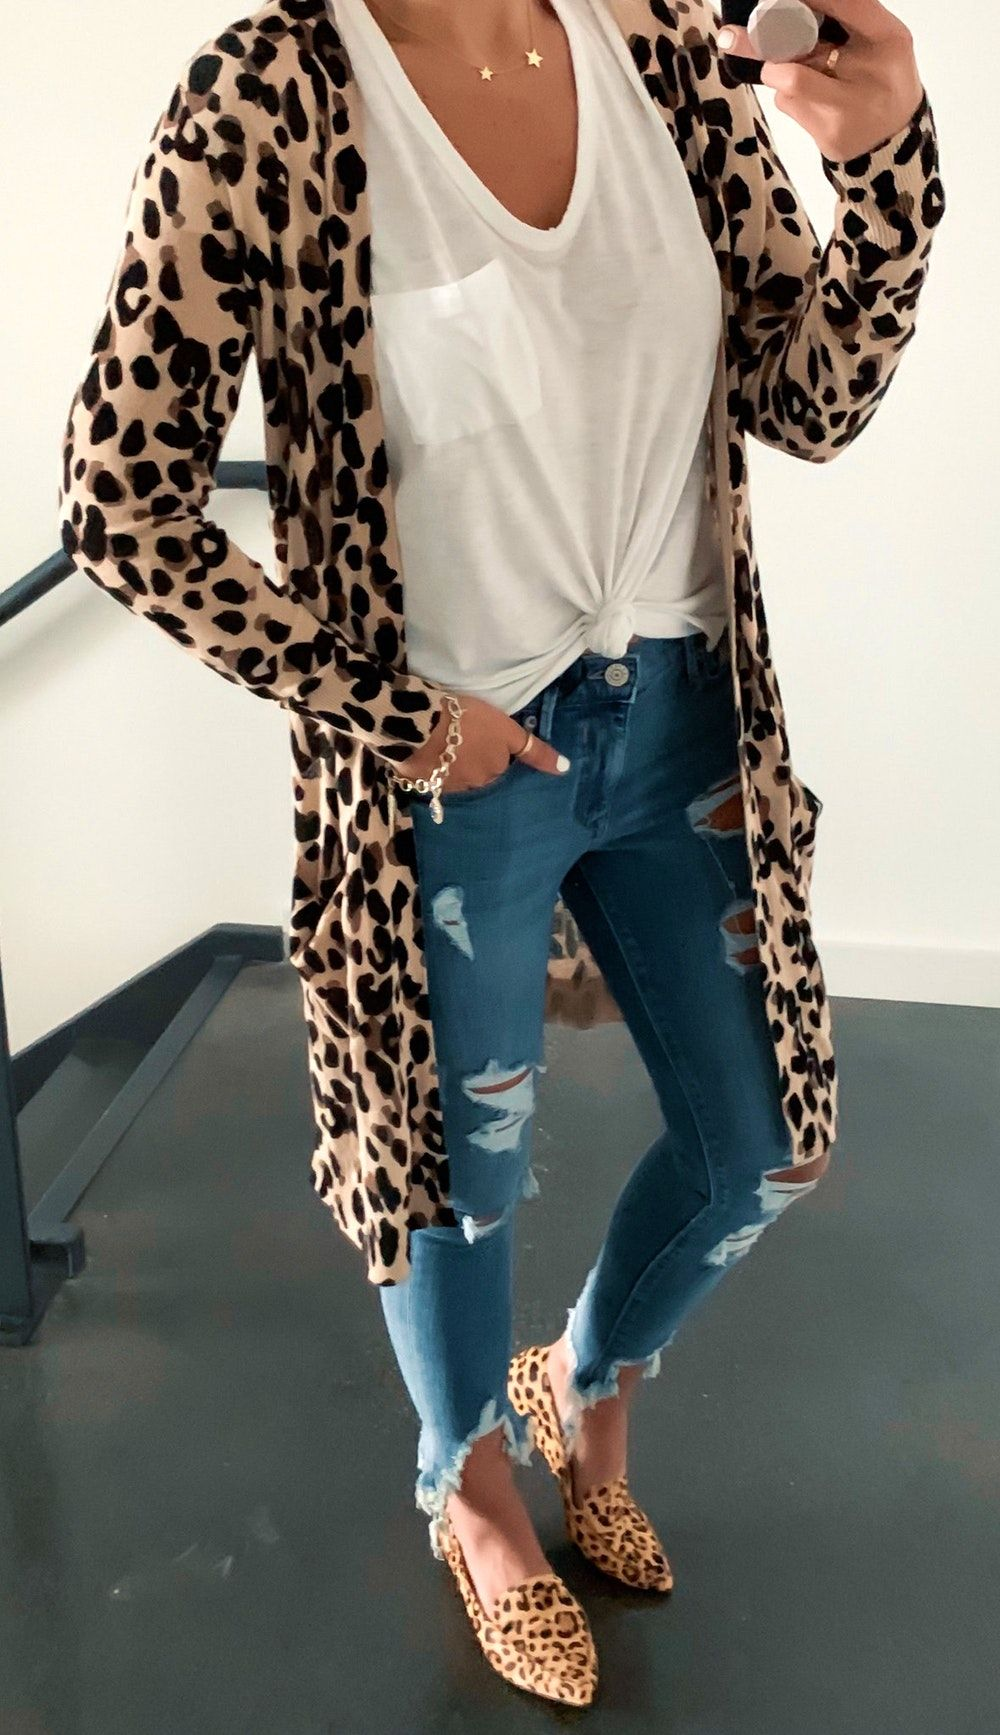 835b494d1626 30+ Trendy Summer Outfits To Copy ASAP | My Style | Fashion, Outfits ...